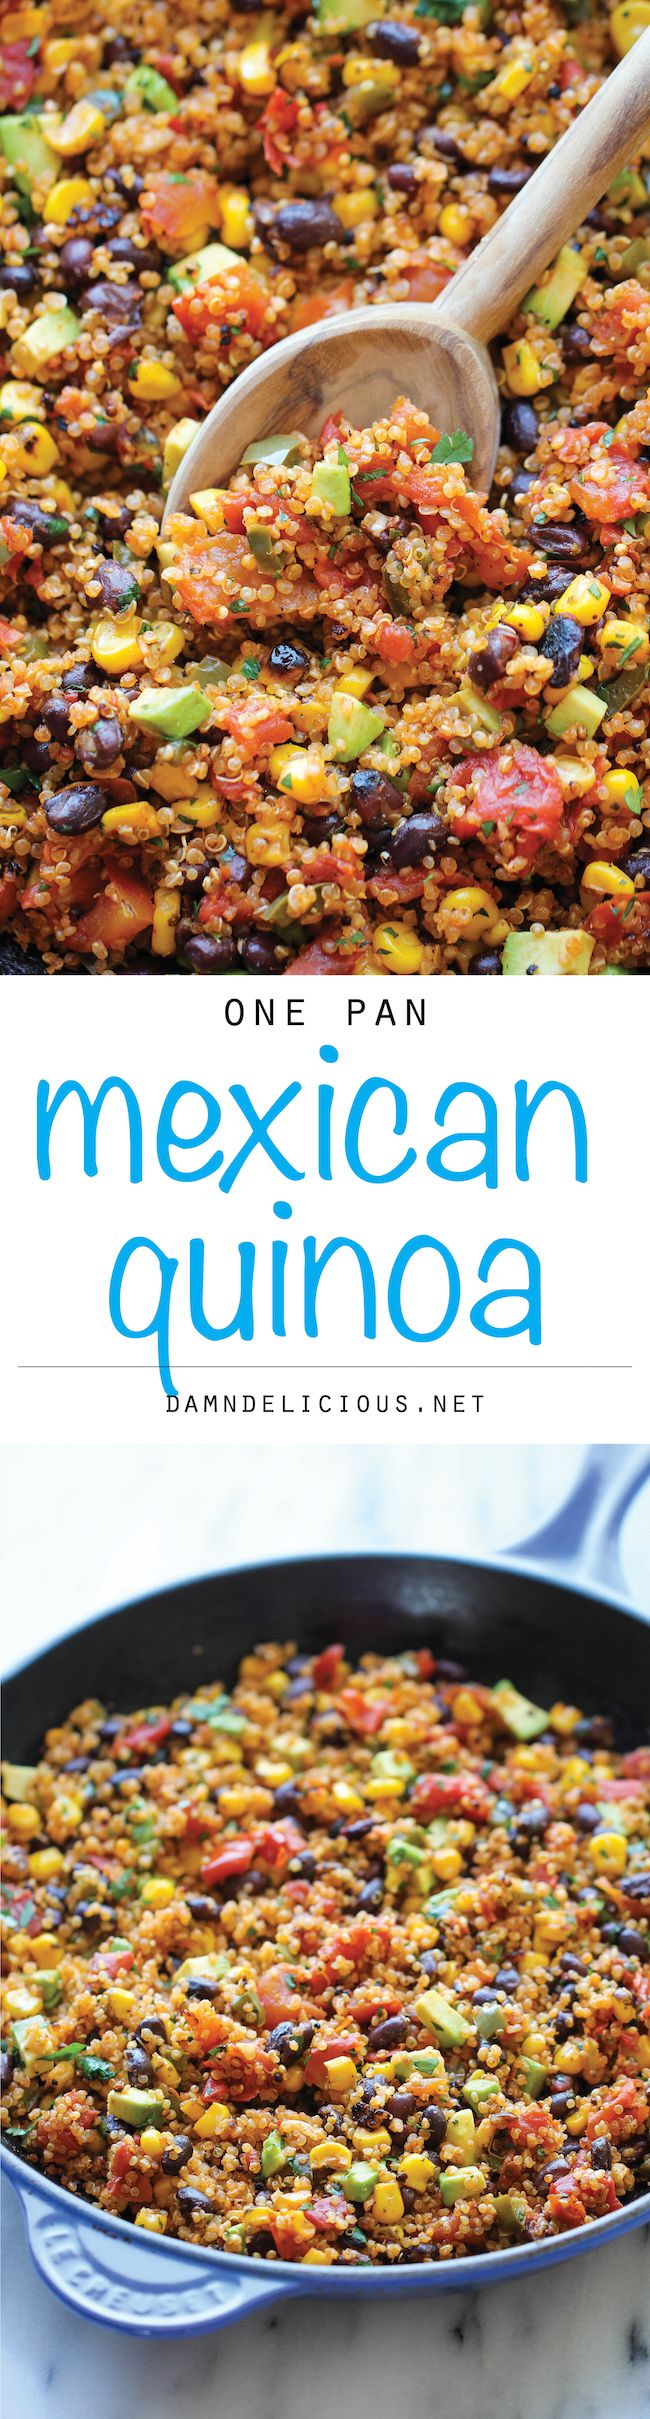 One Pan Mexican Quinoa - the quinoa is cooked in the pan